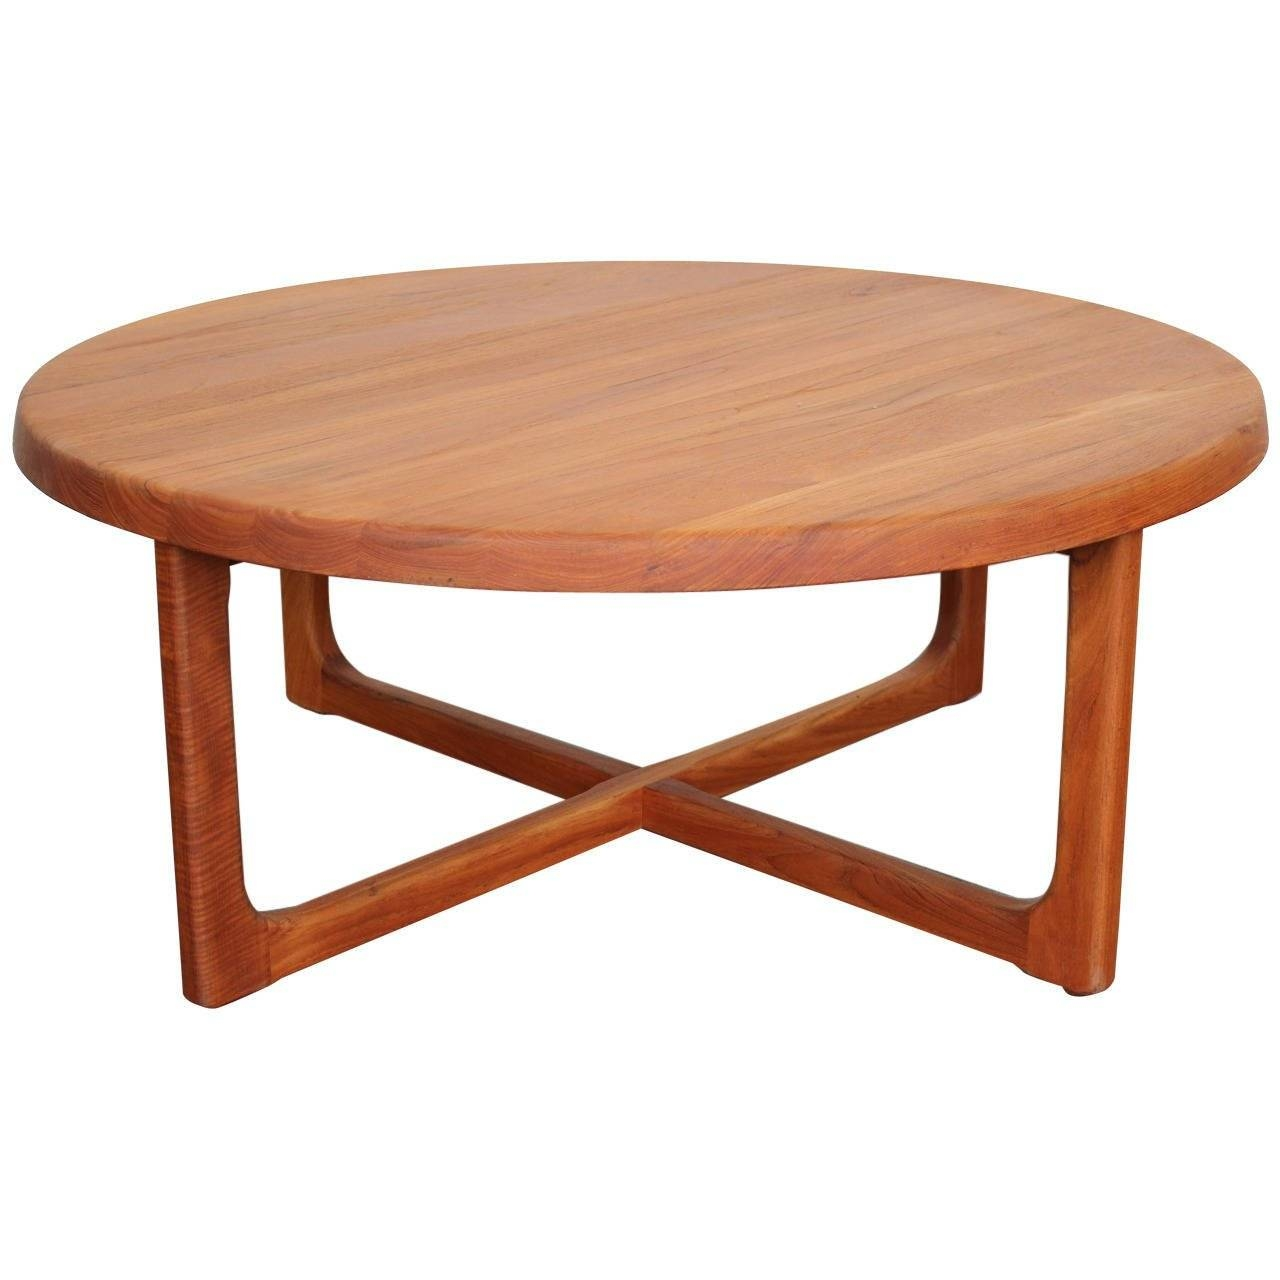 Mid Century Large Round Solid Teak Coffee Table At 1Stdibs Within Solid Round Coffee Tables (View 20 of 30)